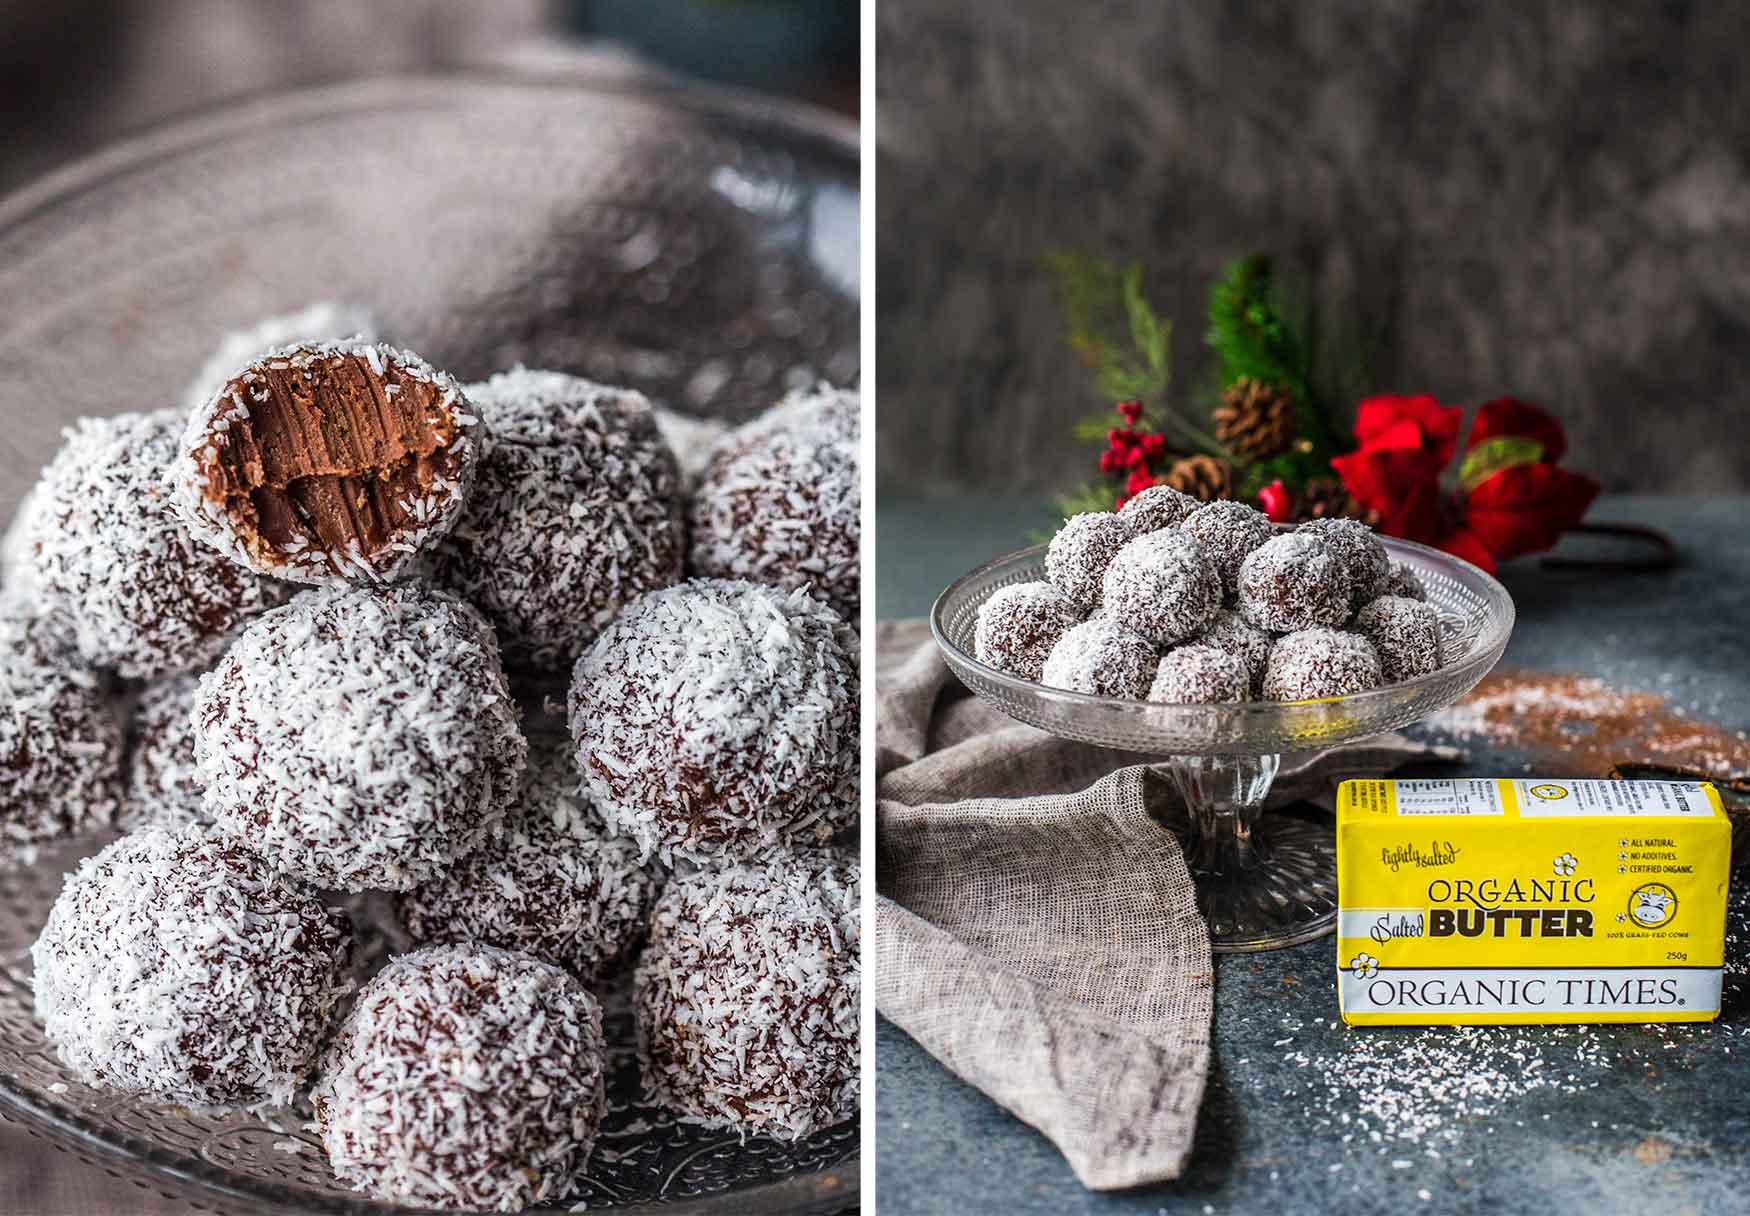 A plate of Chocolate Rum Truffles next to Organic Times Salted Butter and Christmas decorations